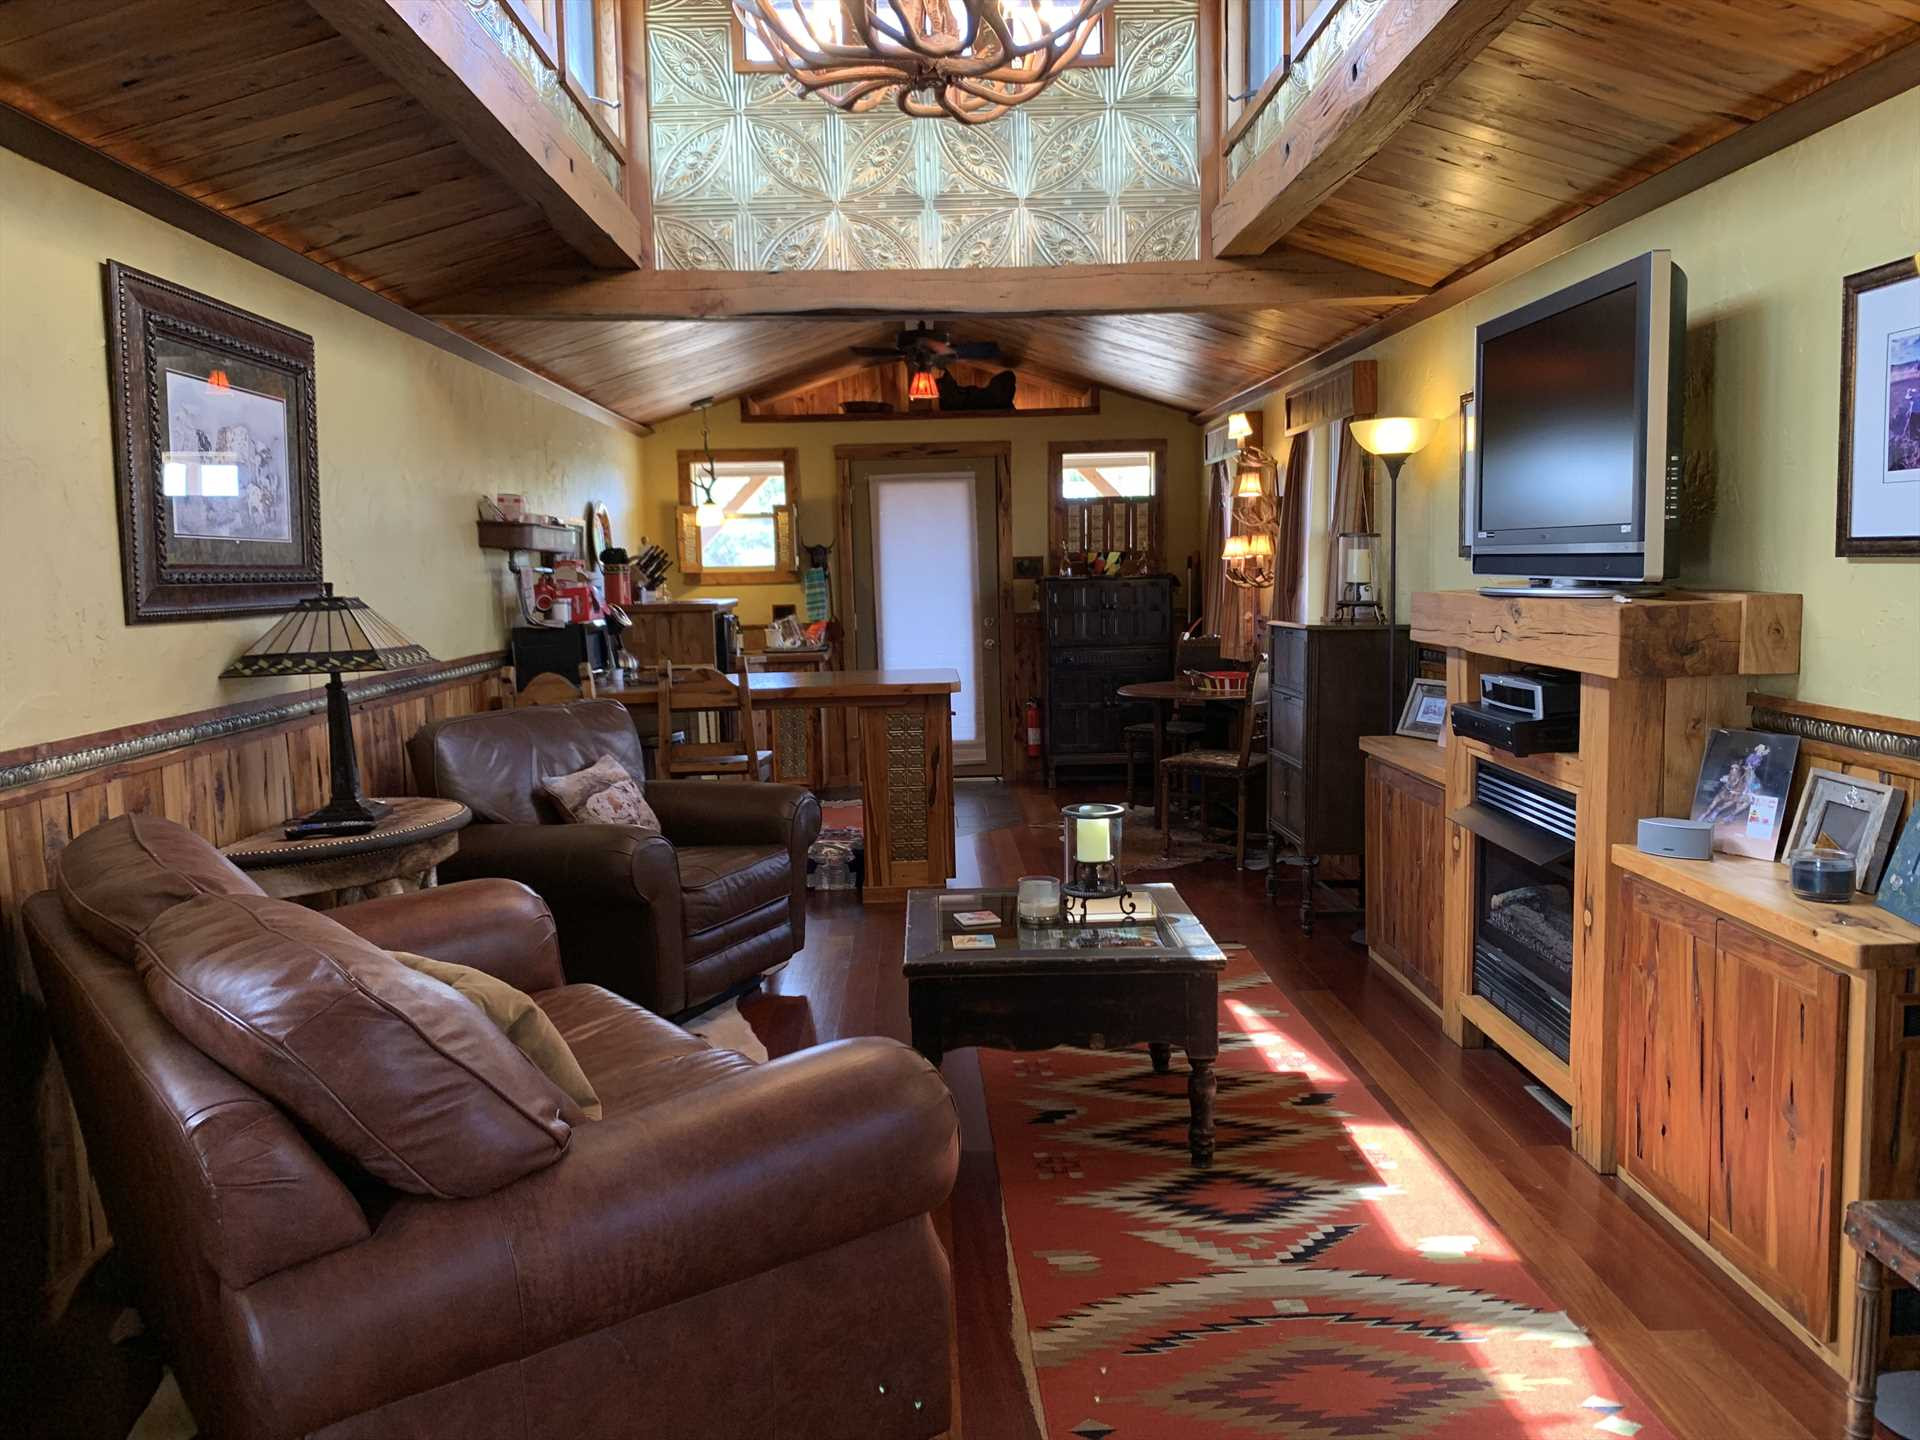 We love to welcome our guests with warm colors, vintage furnishings, and a classic southwestern theme.